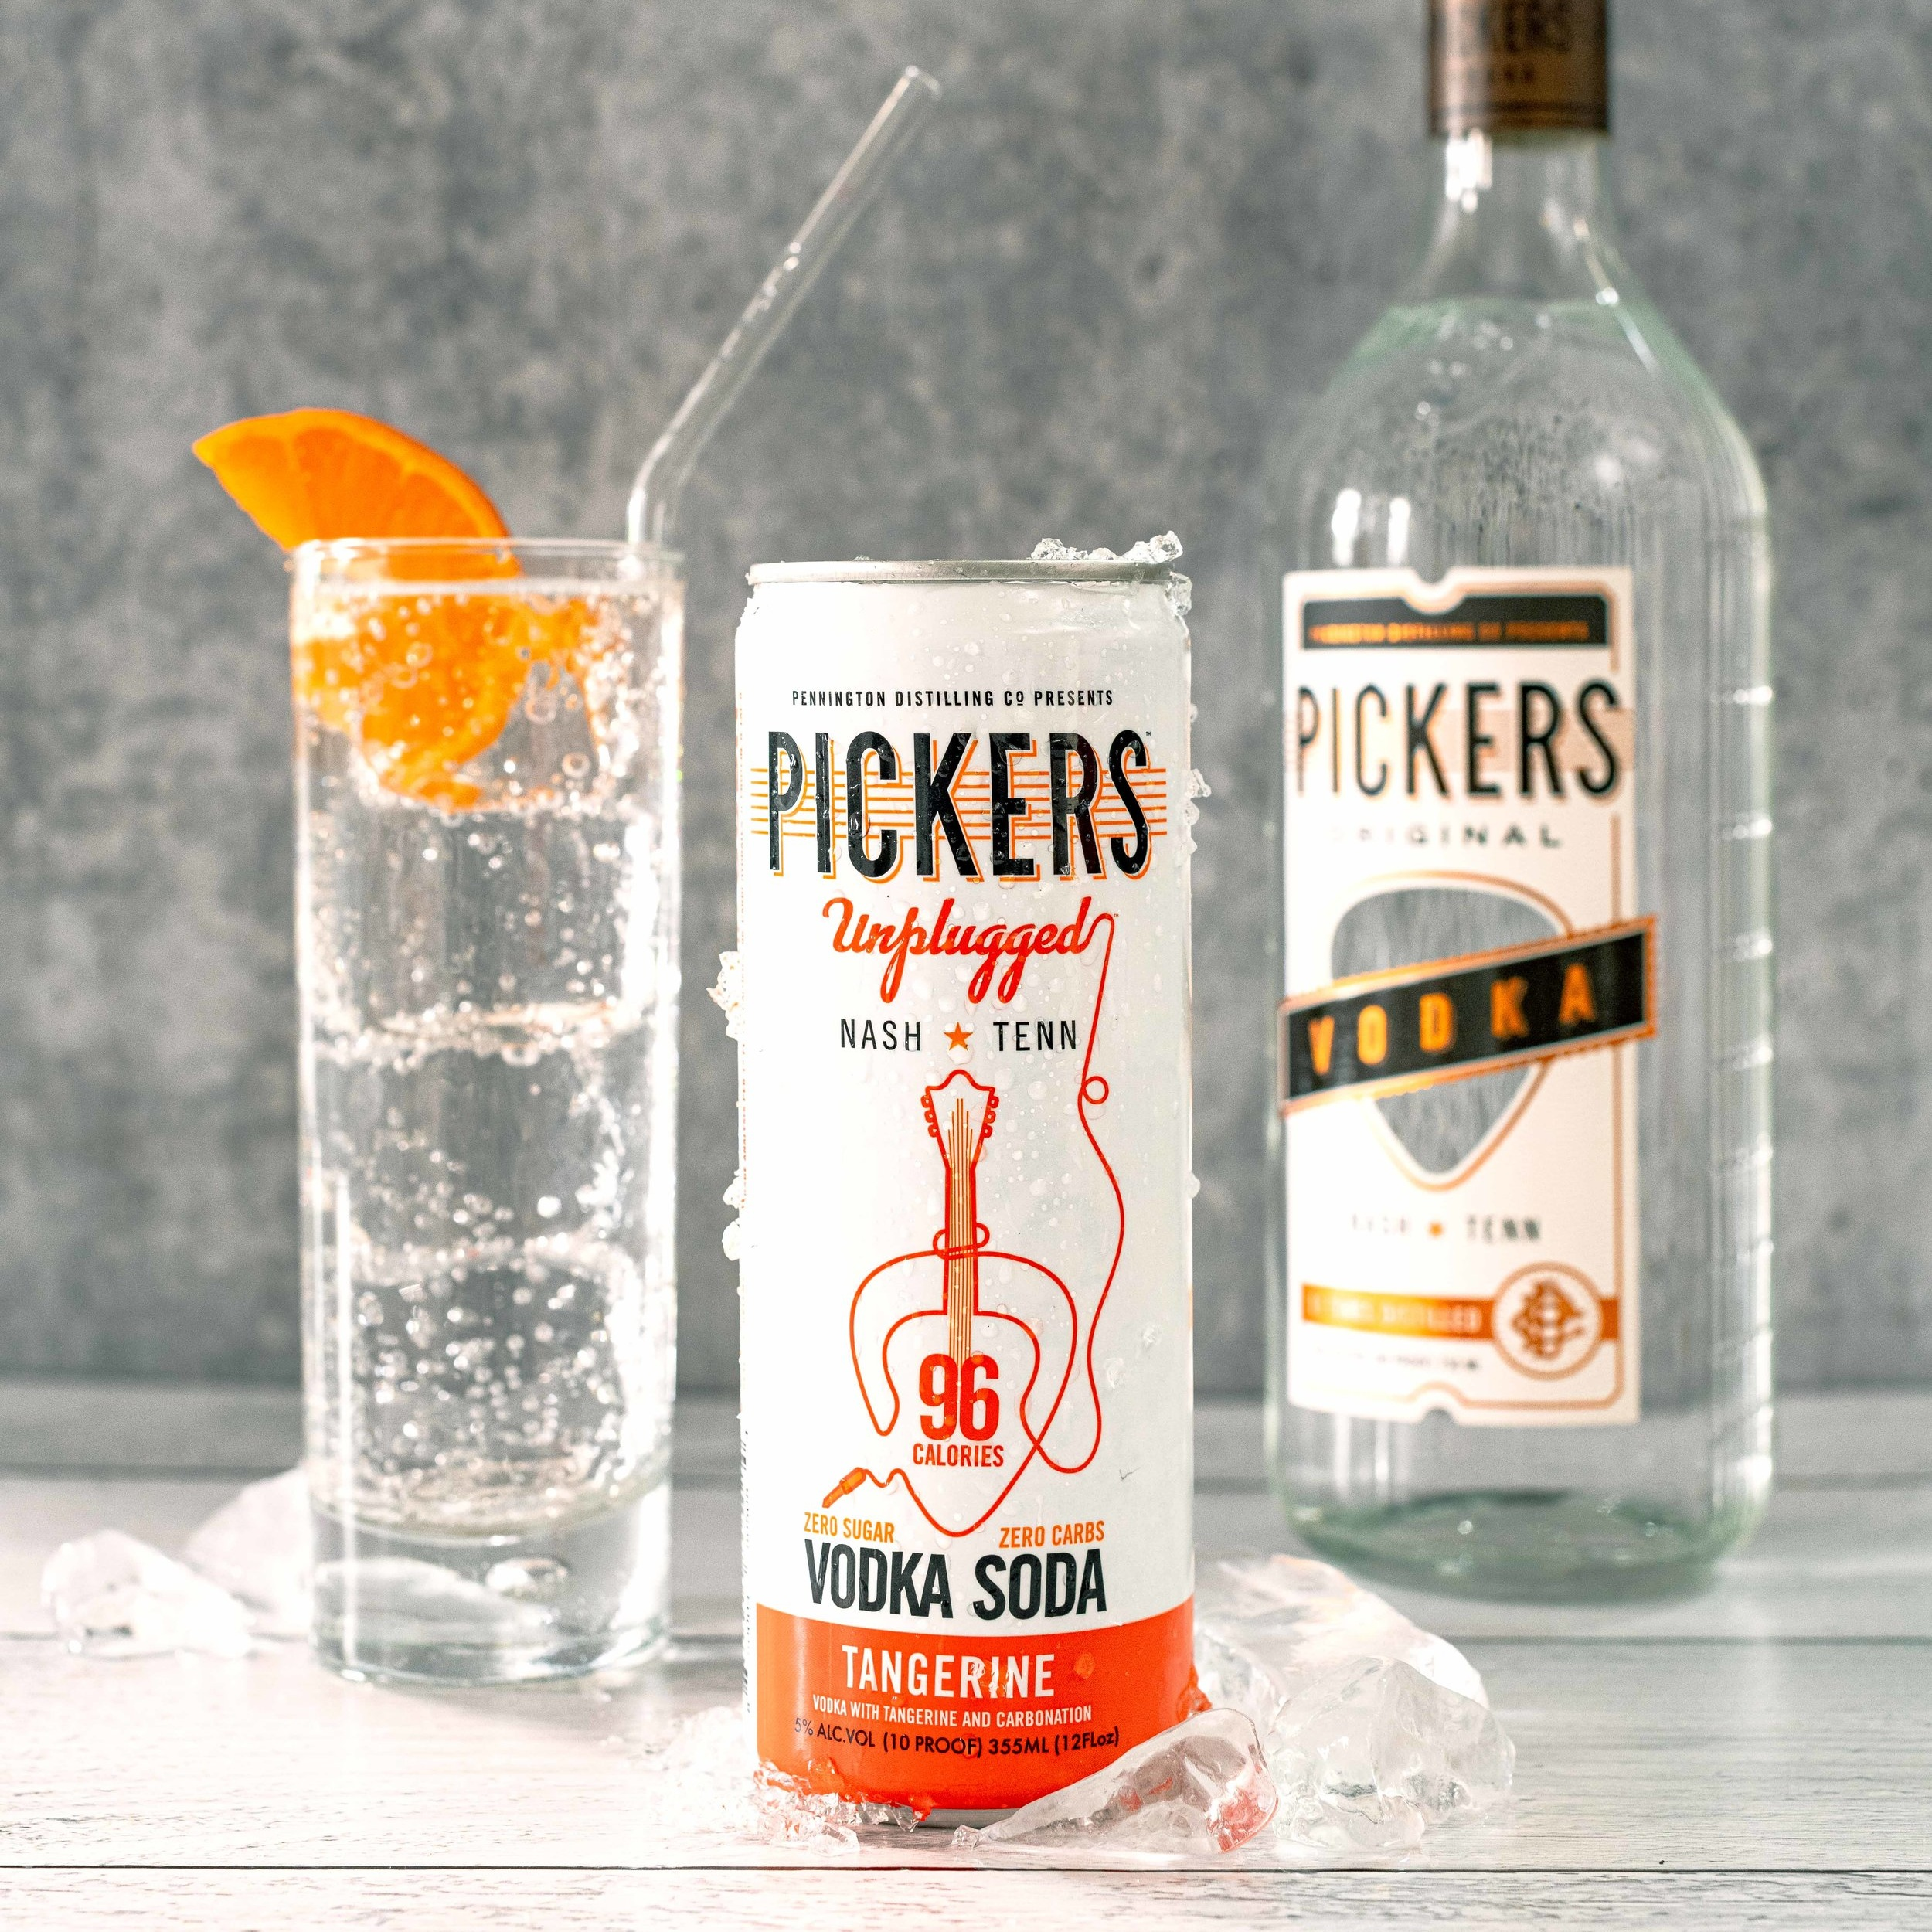 Tangerine Vodka Soda - Pickers Vodka and sparkling water with a hint of natural Tangerine flavor.